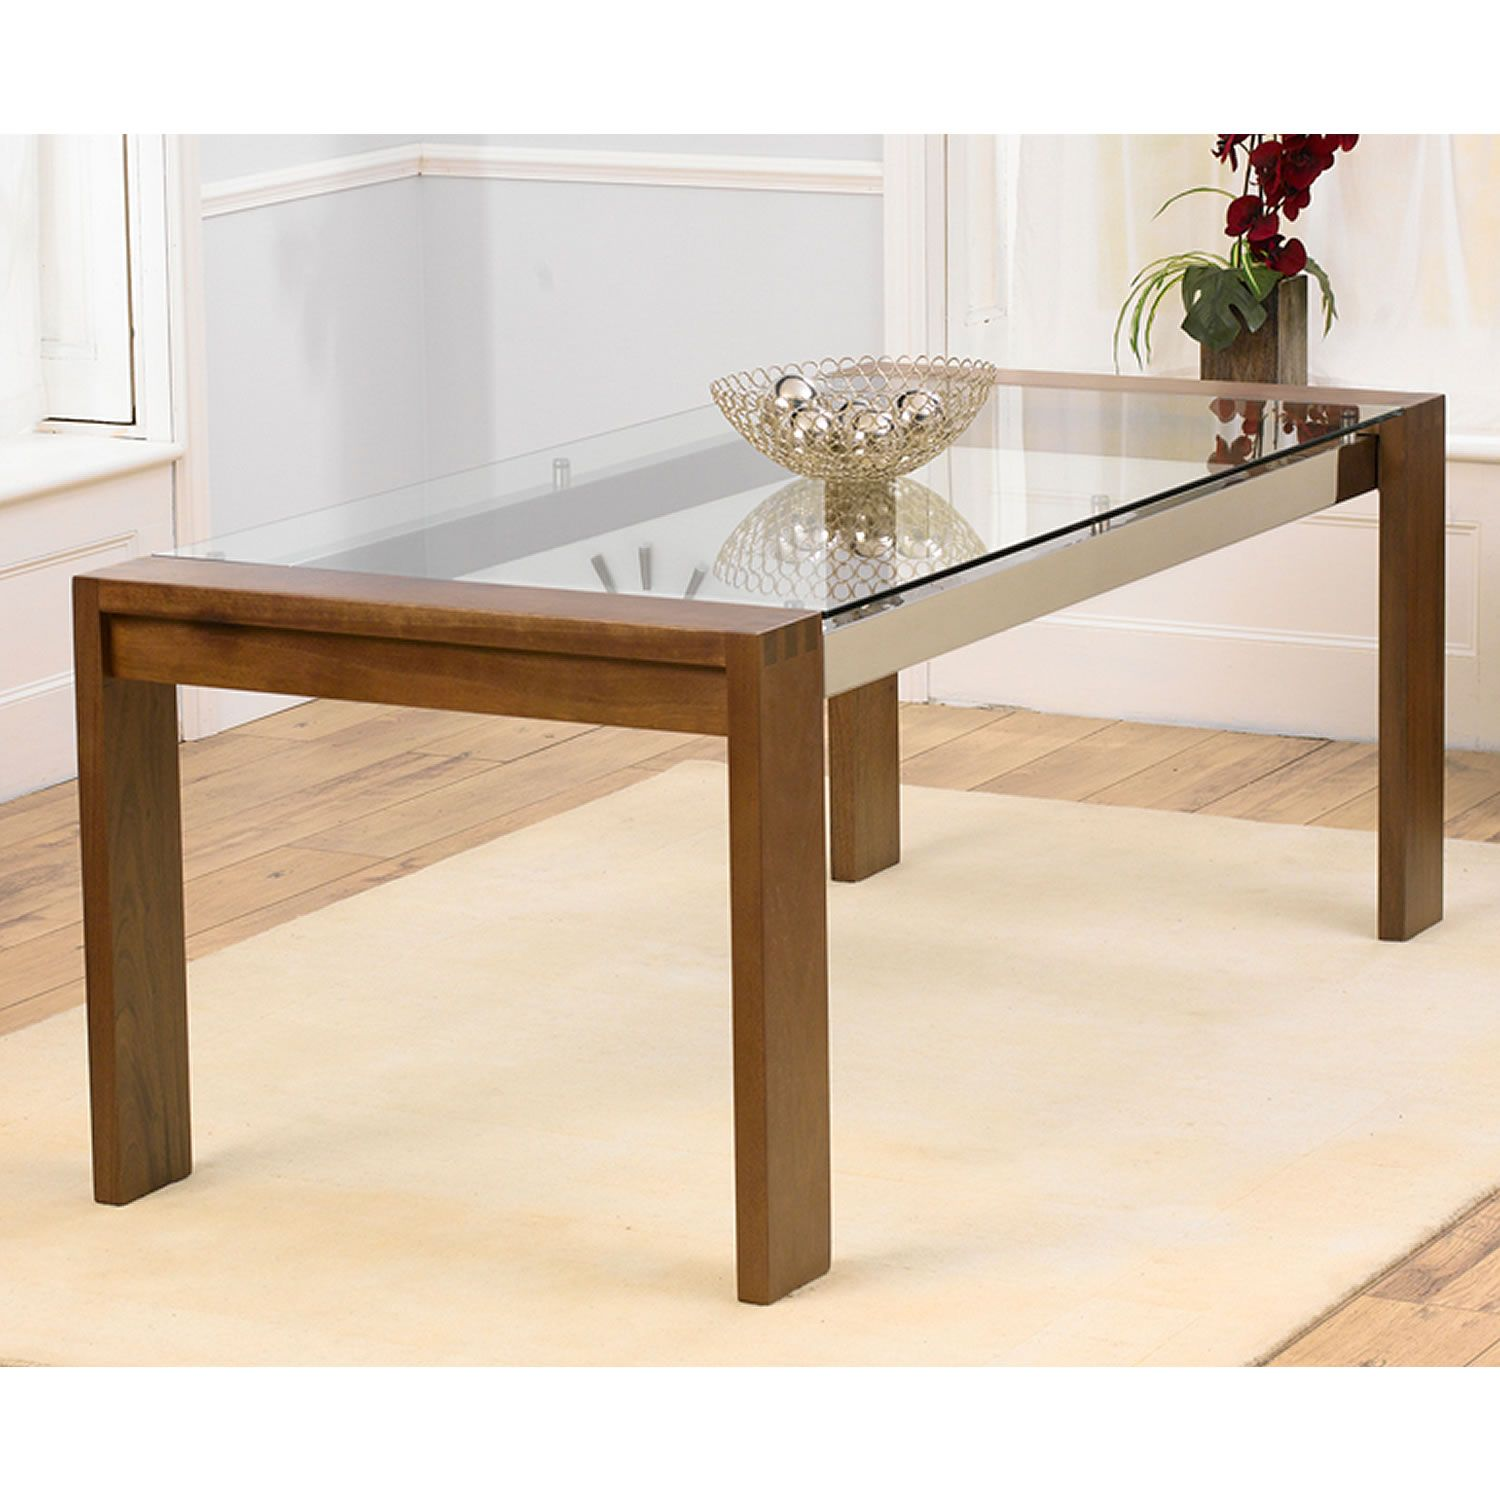 Image Result For Wooden Legs Glass Table Top Glass Top Dining